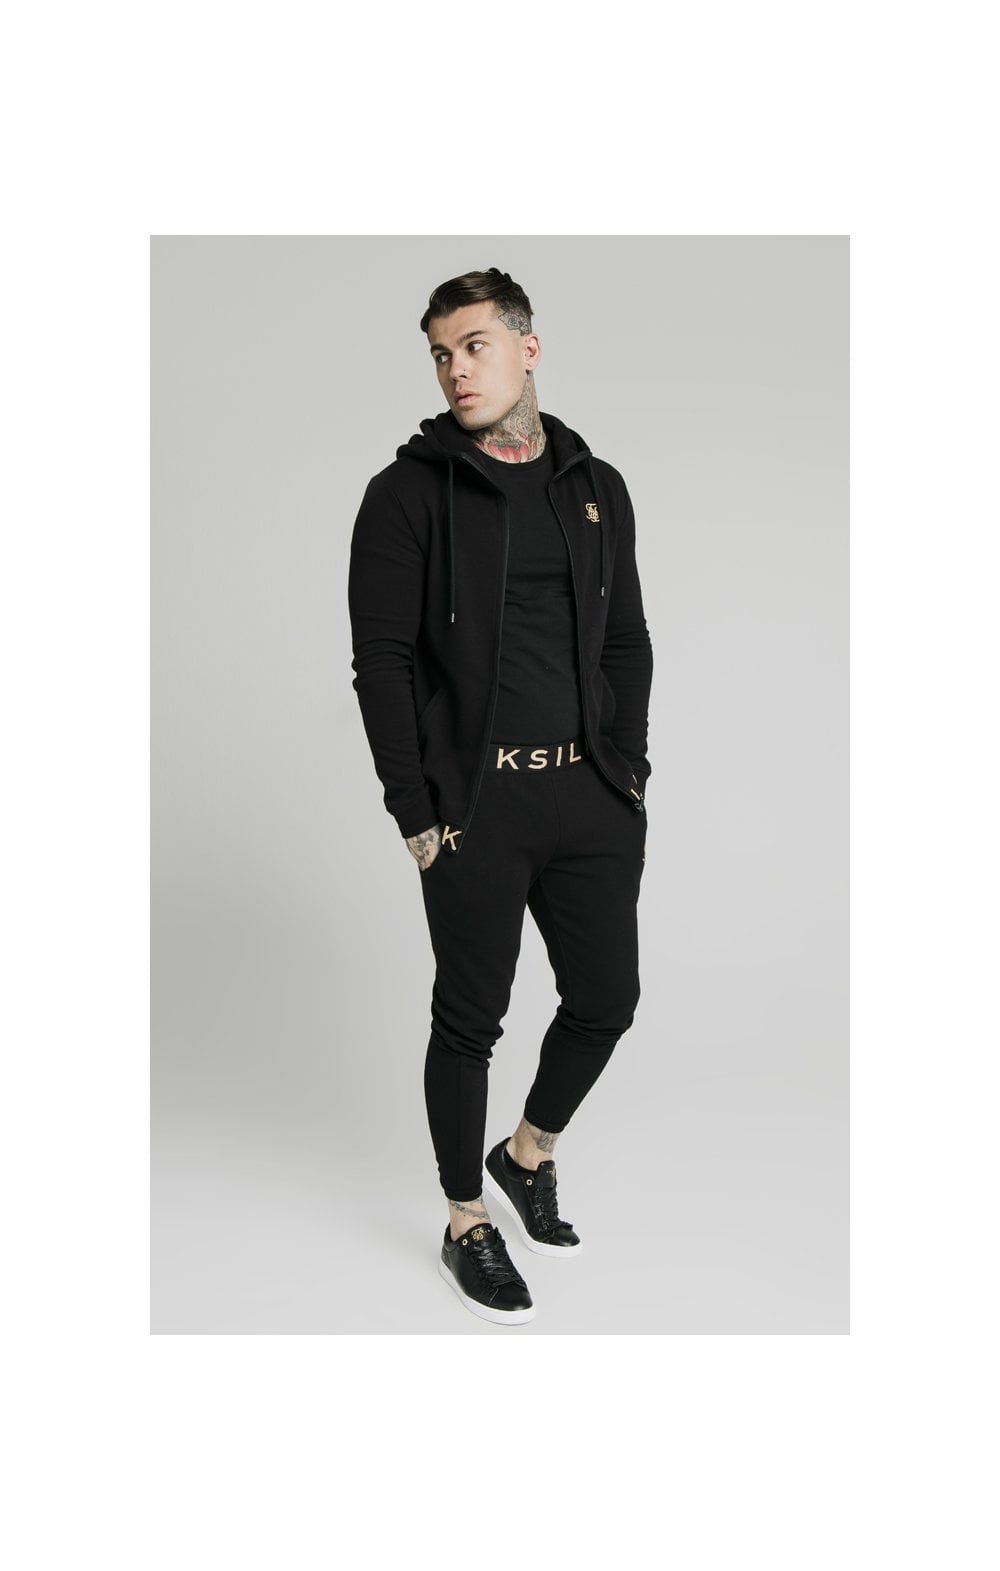 SikSilk Elastic Jacquard Zip Through Hoodie – Black (2)